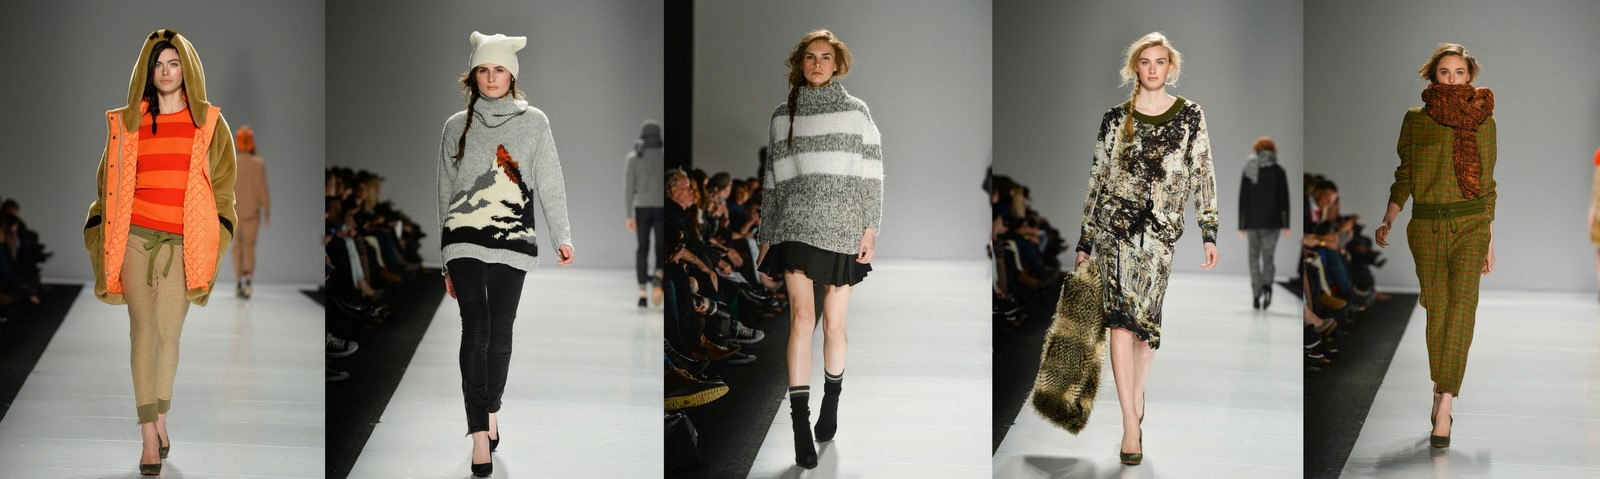 WMCFW-fall-winter-collections